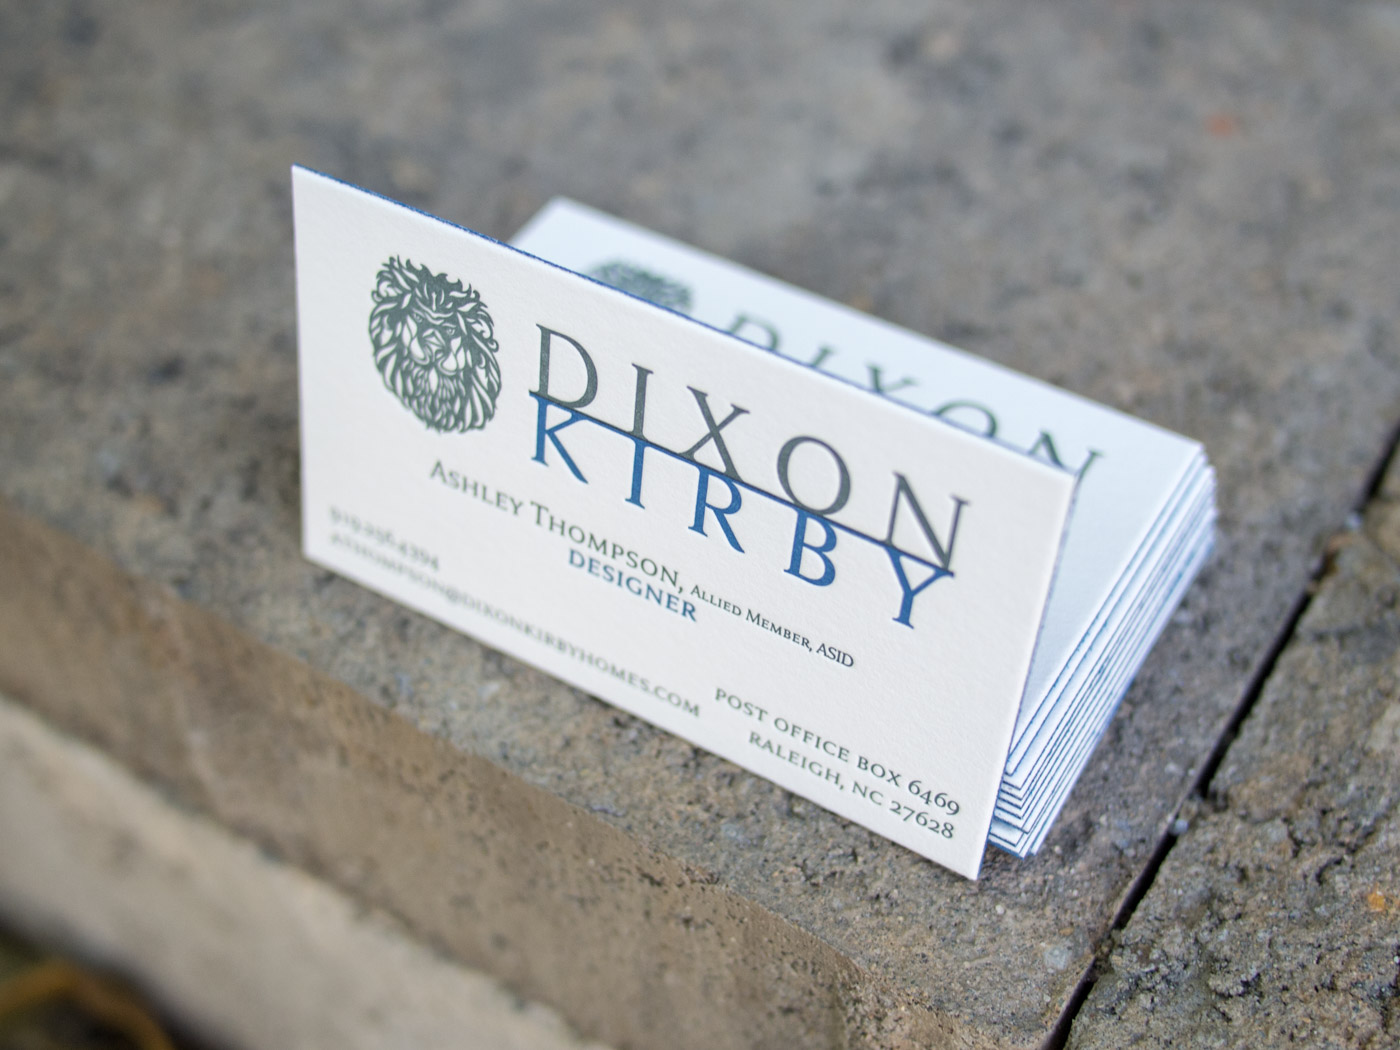 Dixon Kirby | Printed by Parklife Press